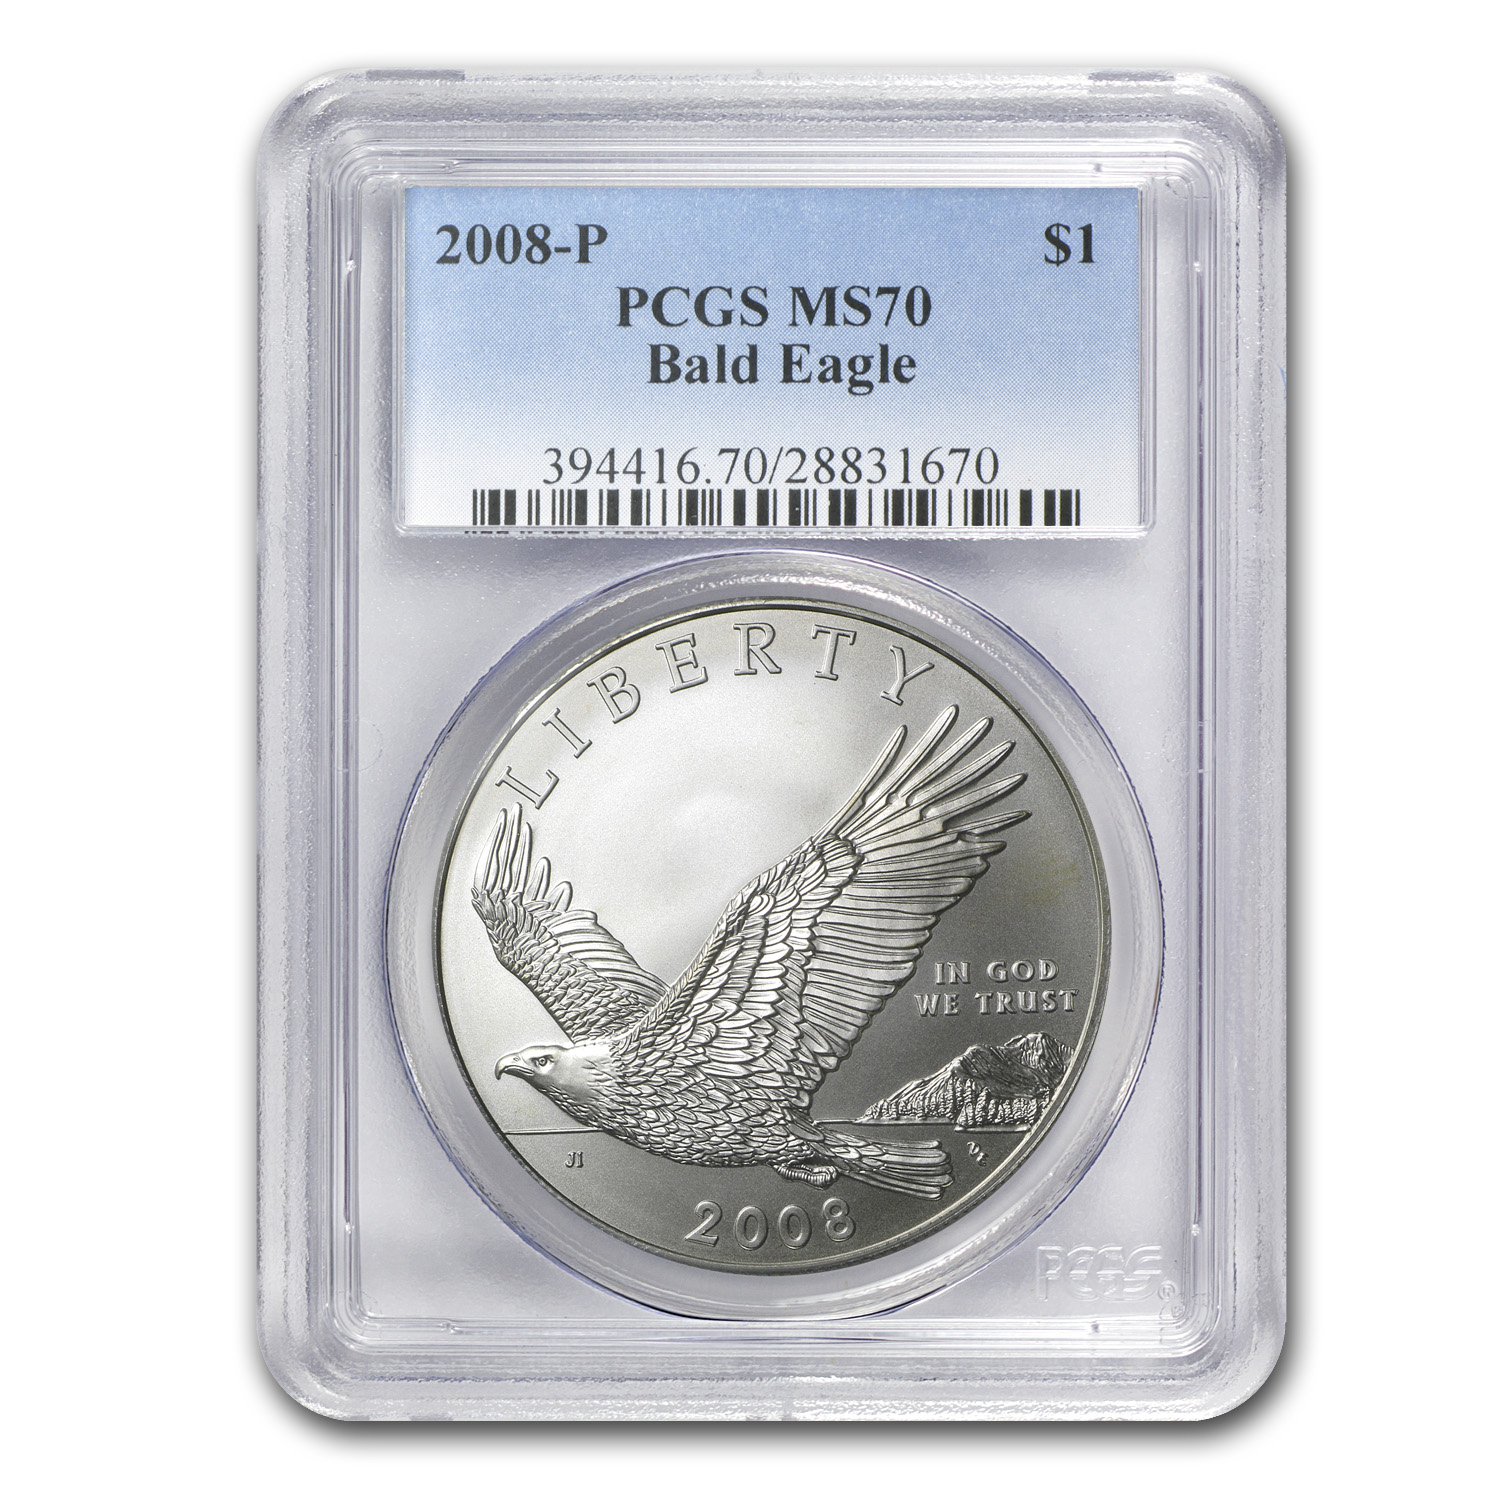 2008-P Bald Eagle $1 Silver Commem MS-70 PCGS